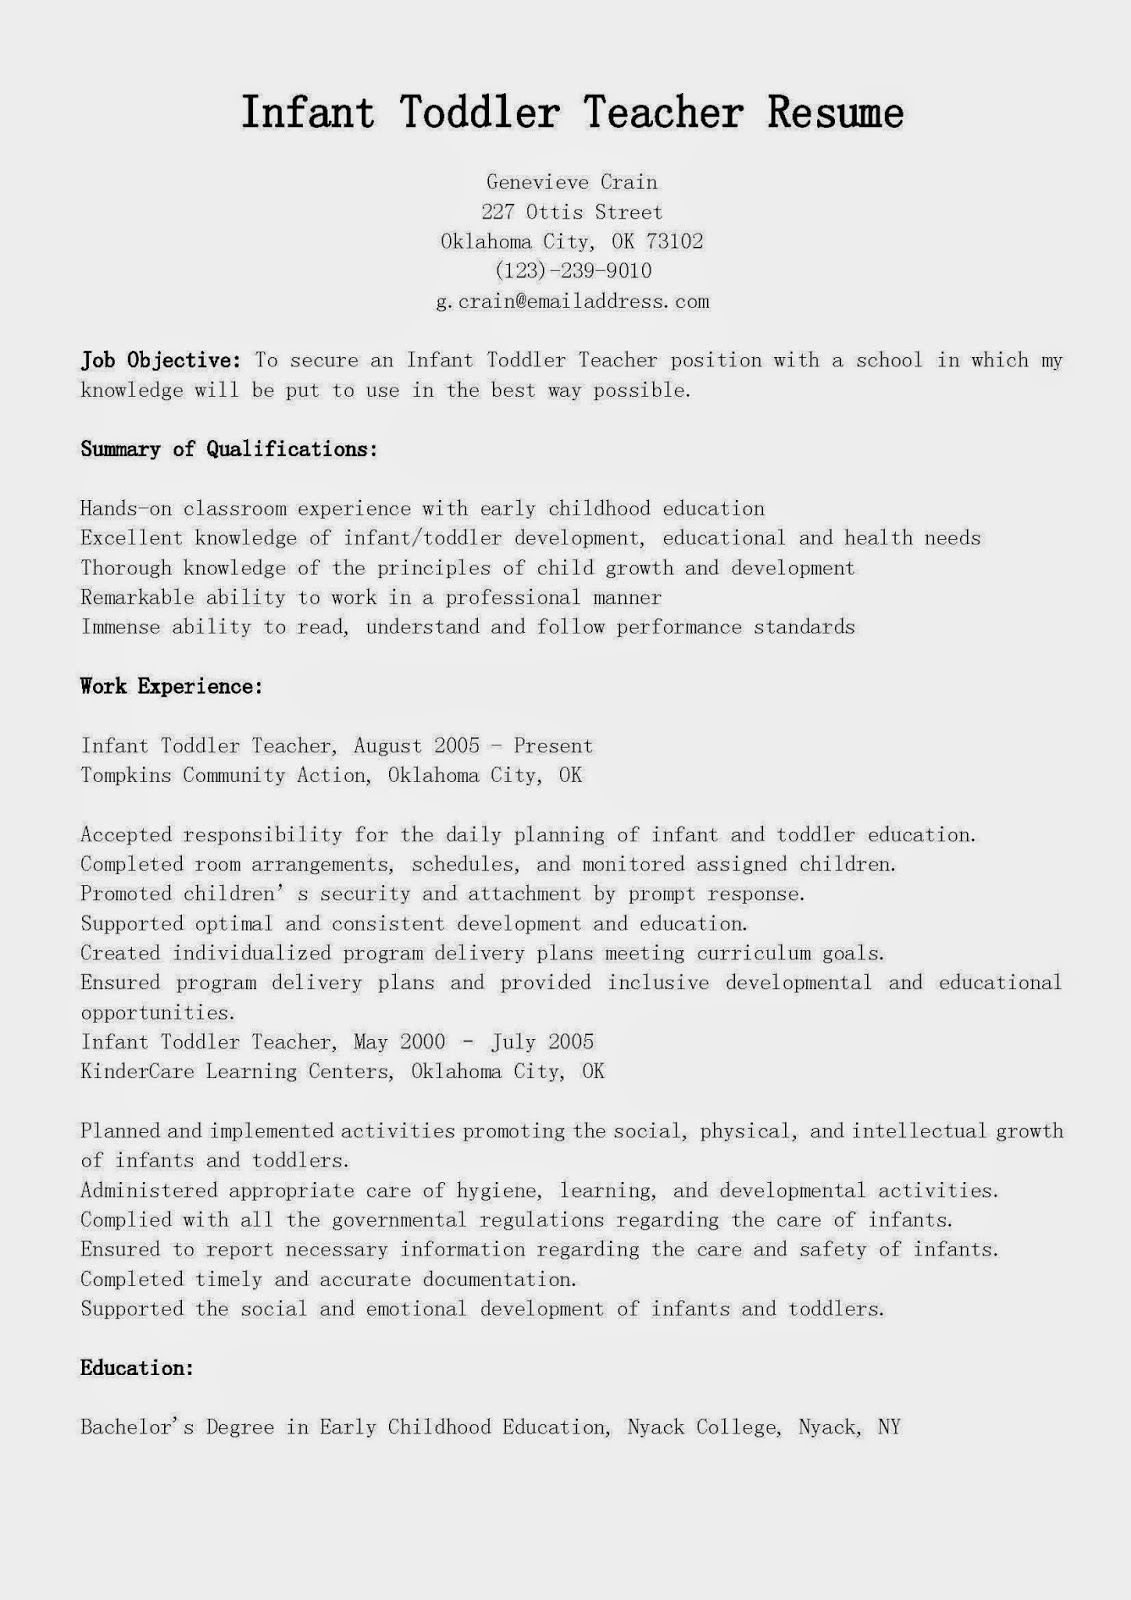 resume samples  infant toddler teacher resume sample